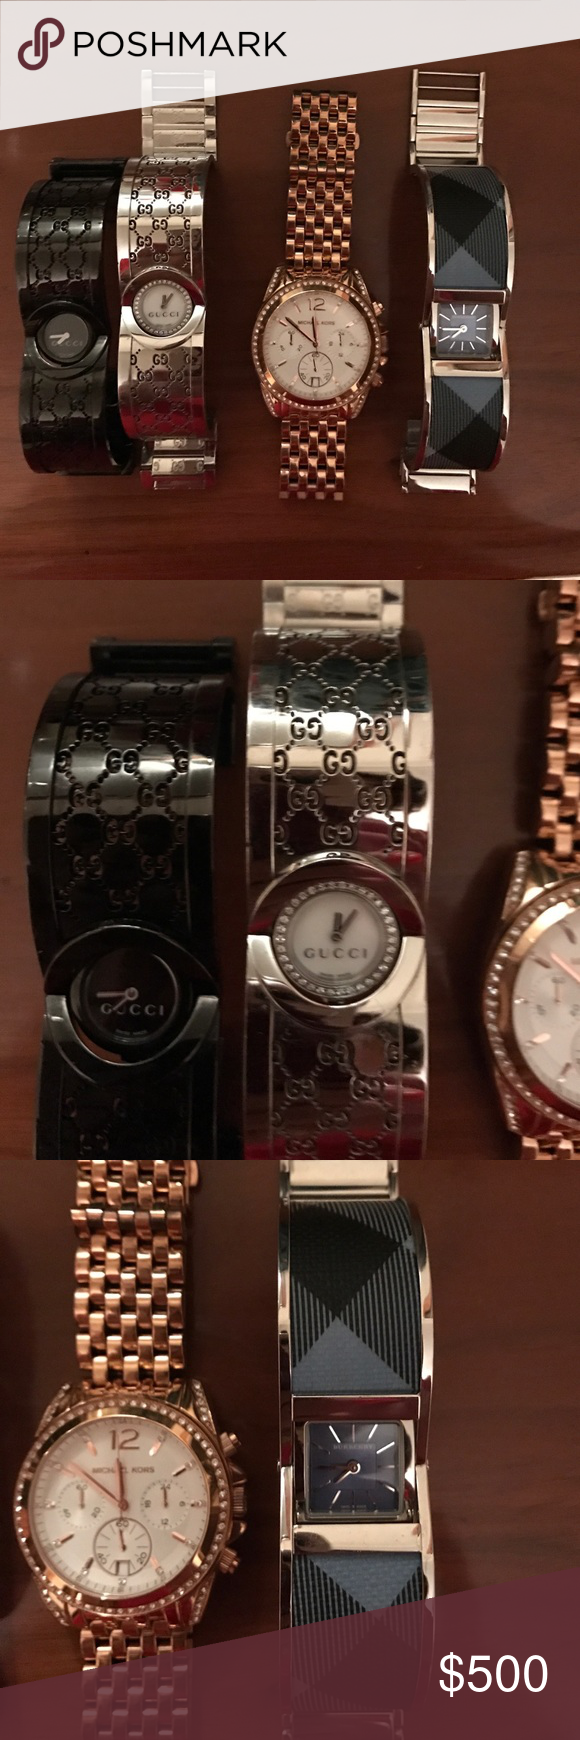 Gucci watches, Michael Kors and Burberry watches Authentic Gucci, Burberry and Michael Kors watches. May need batteries but in excellent condition! Wanting to sell as a group, if priced individually may cost more! Watches brand new cost anywhere from 400-1200 apiece. I don't have links. Gucci Other